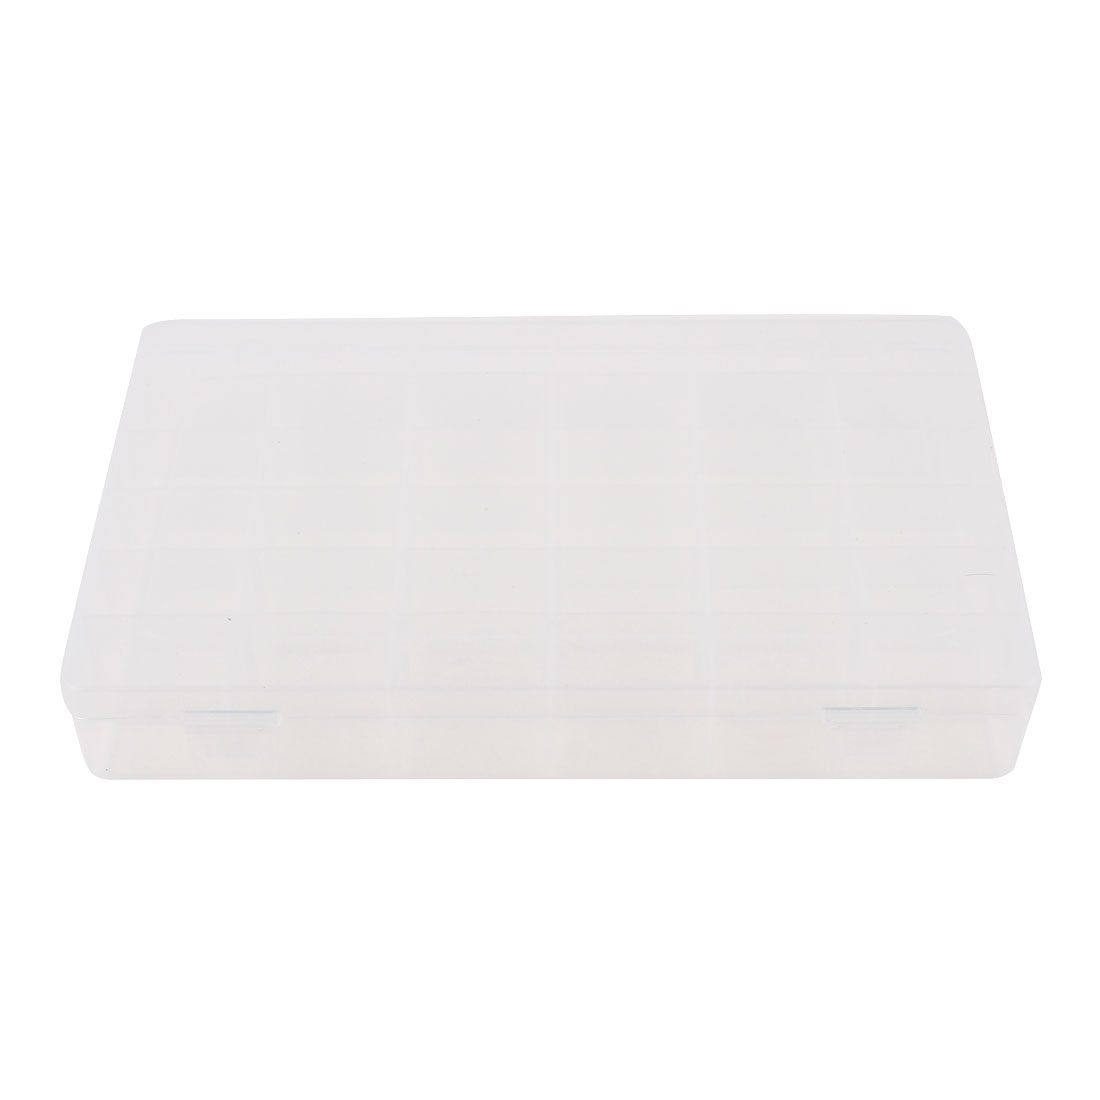 27.5cmx17.5cmx4.5cm Rectangle Plastic Detachable 36 Slots Electronic Components Tool Storage Case Box Organizer Holder